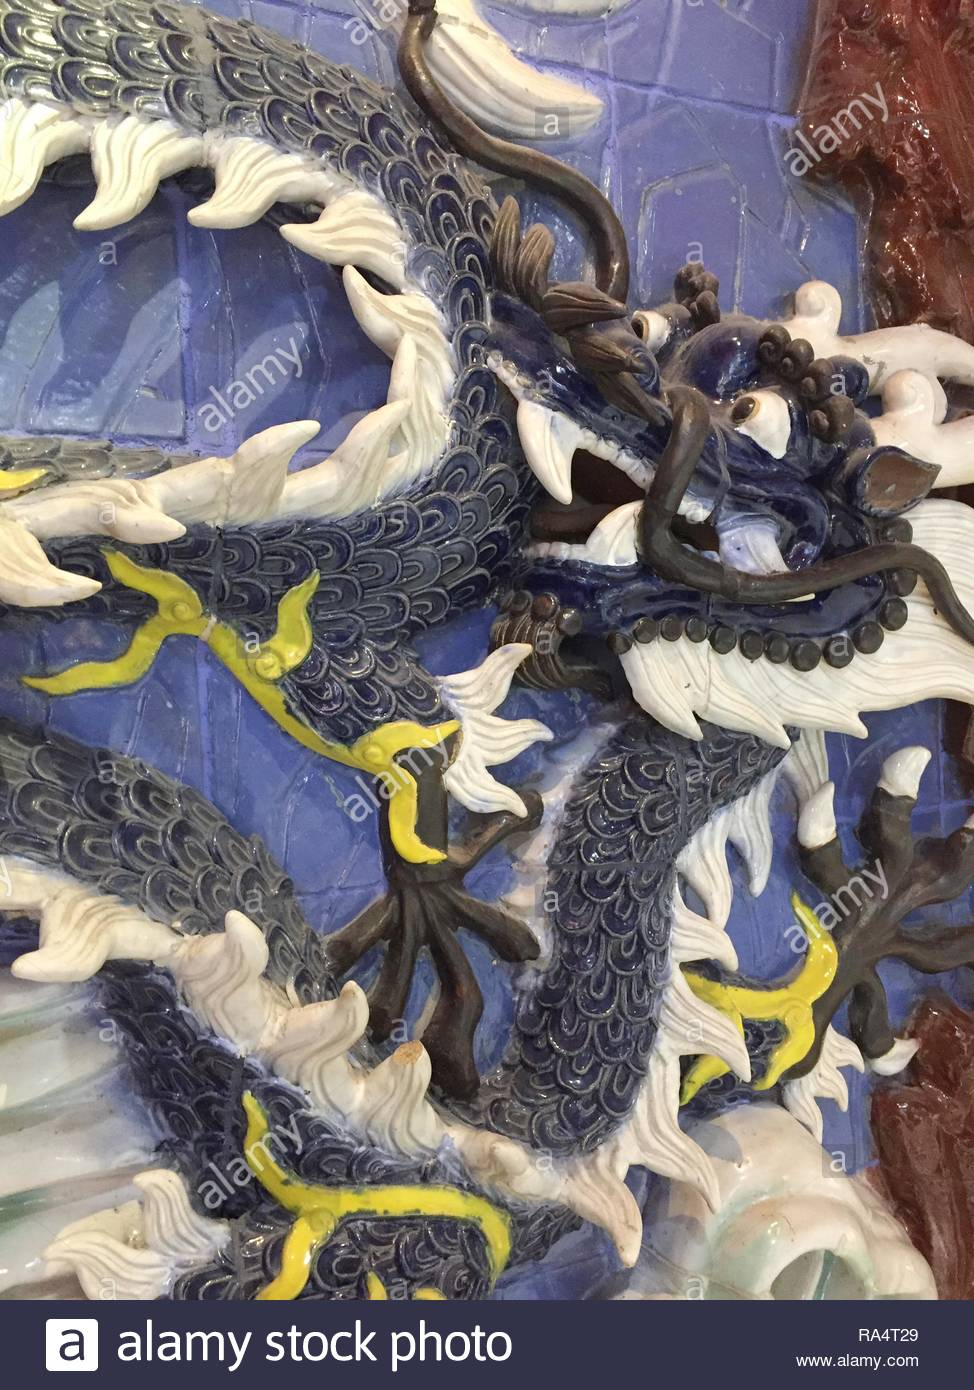 Ceramic figure of a Chinese dragon in Markham, Ontario, Canada. - Stock Image